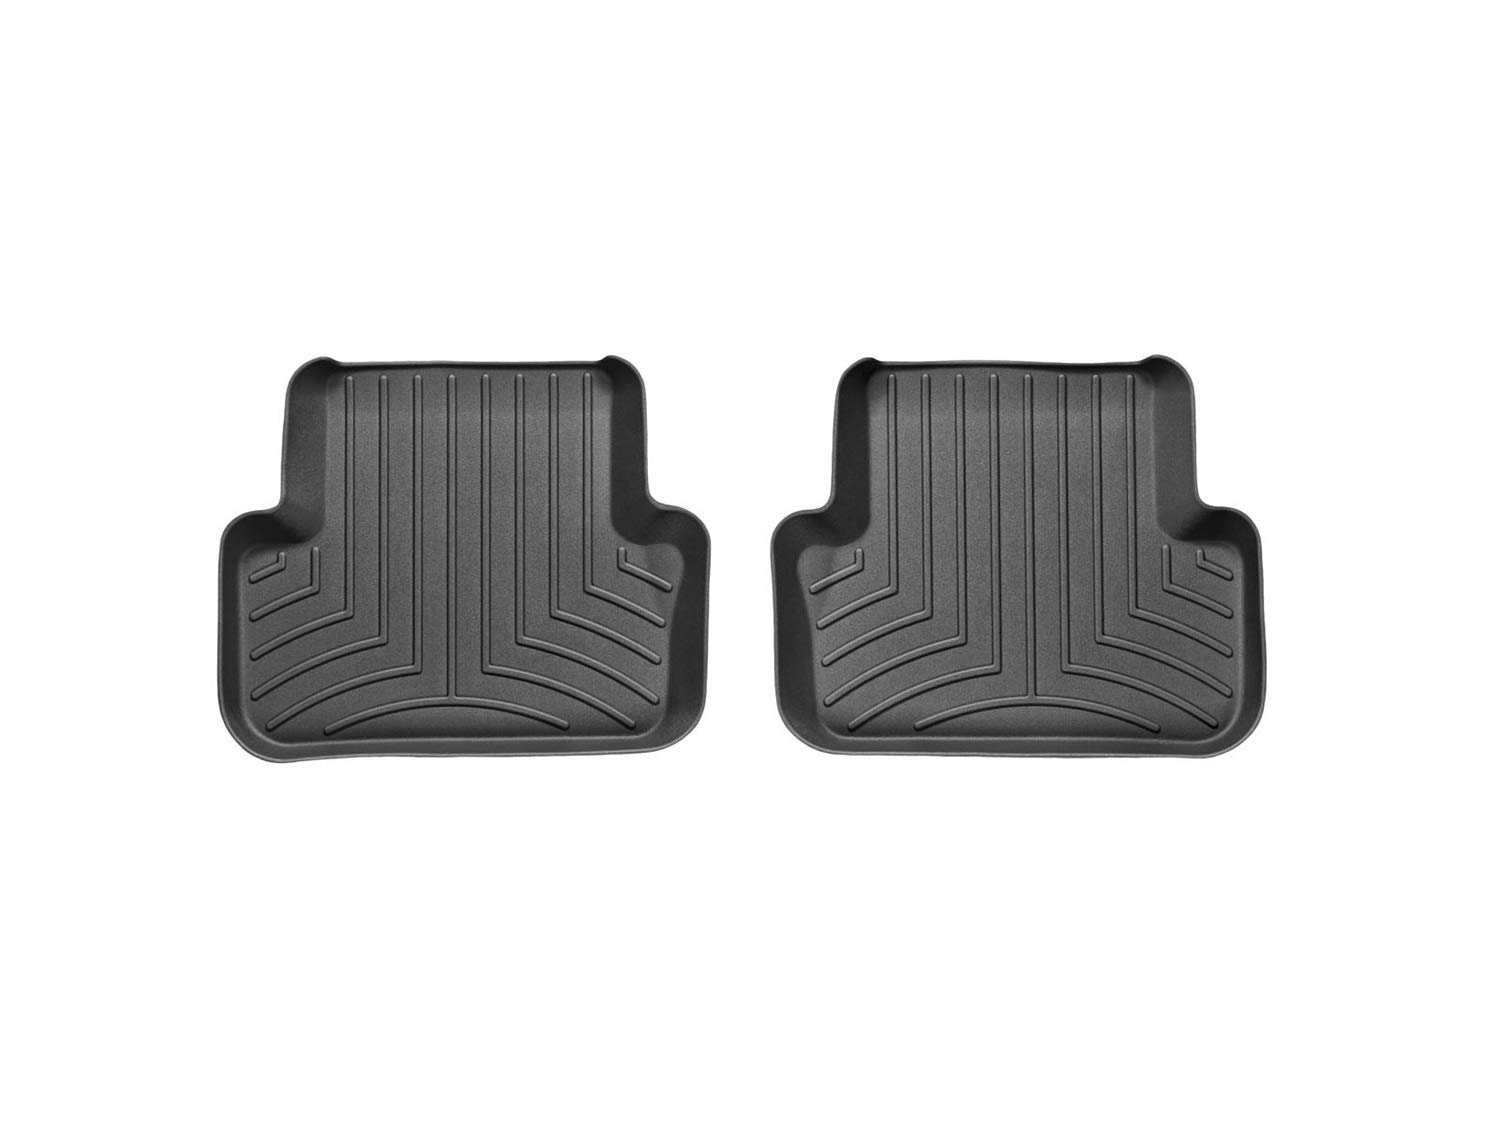 WeatherTech Custom Fit Rear FloorLiner for Select Audi Models (Black) 442122